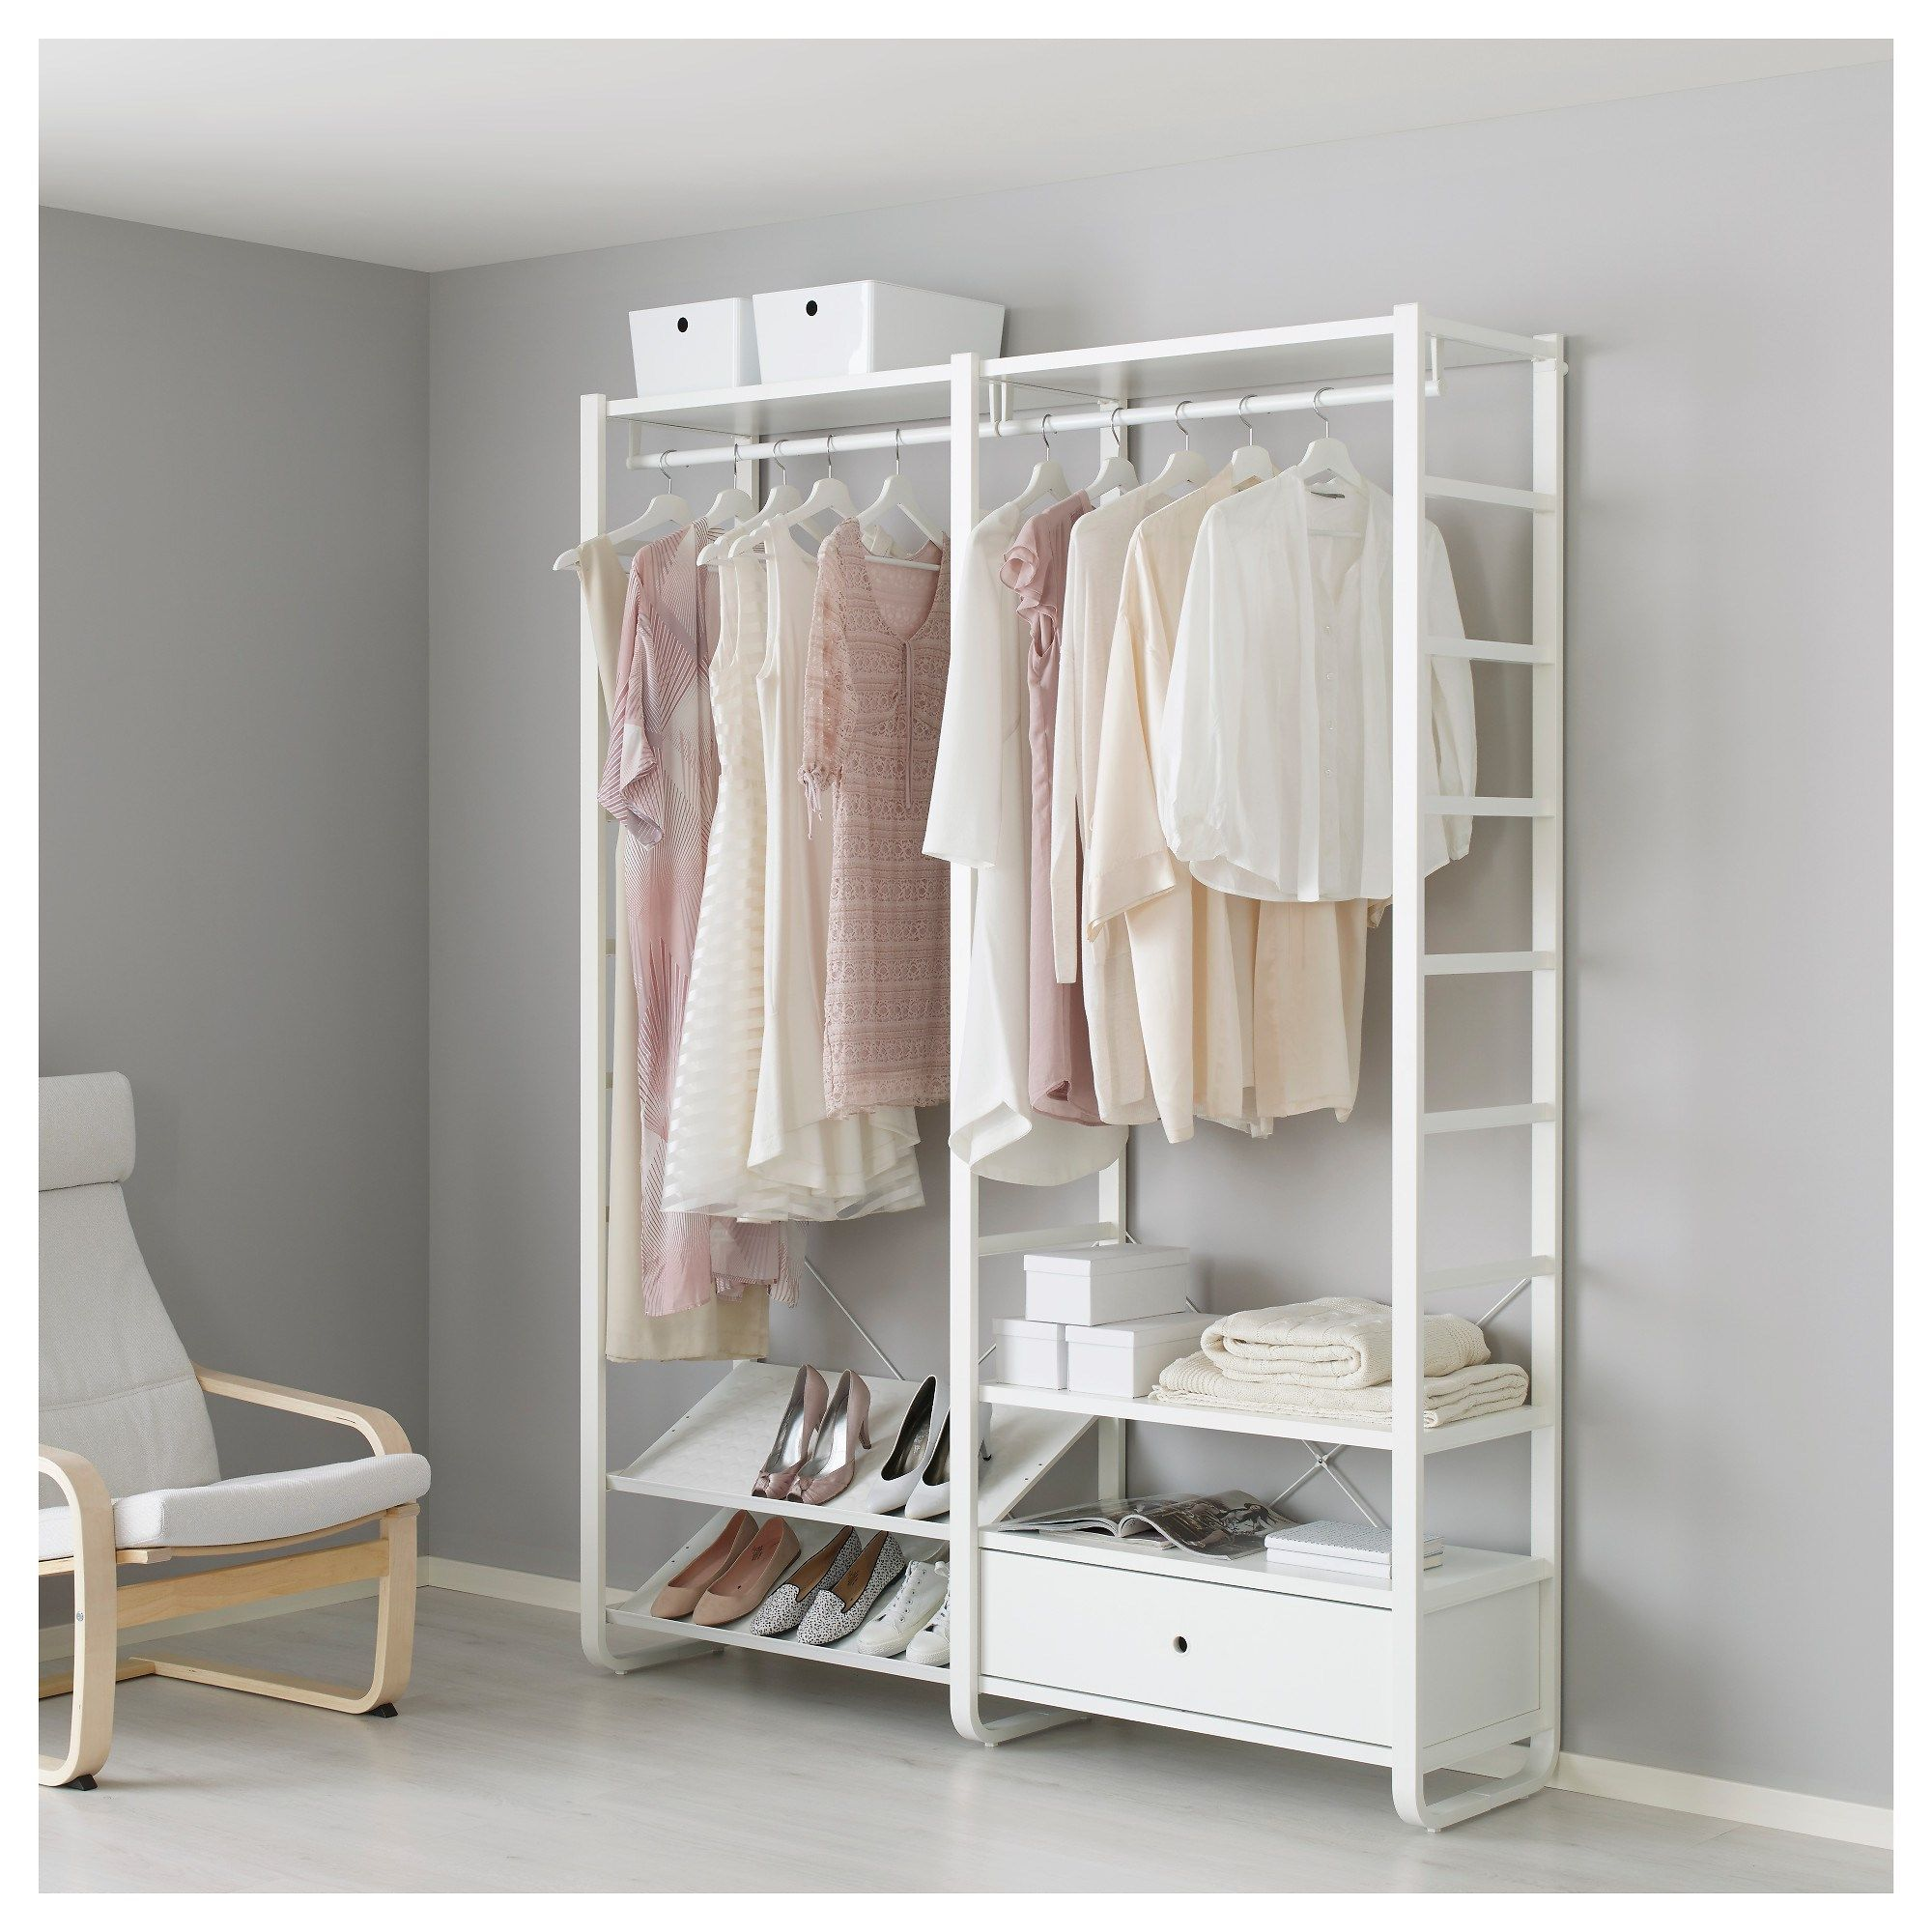 ELVARLI open storage unit white 165x40x216 cm | IKEA Bedroom ...